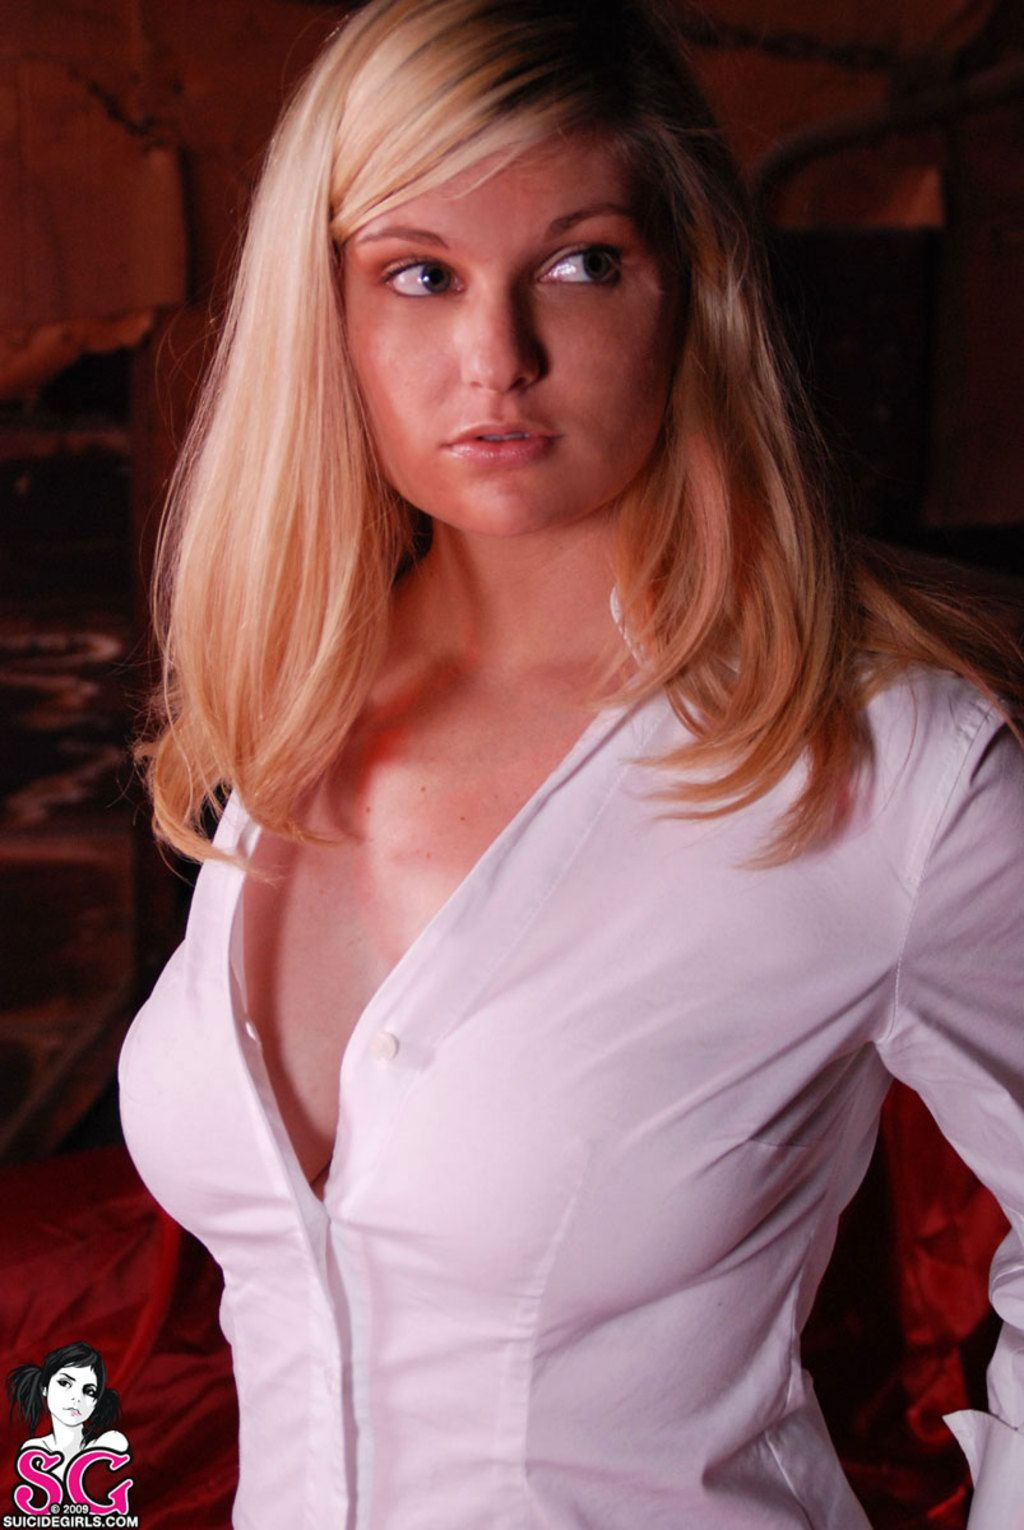 Blonde busty hot natural